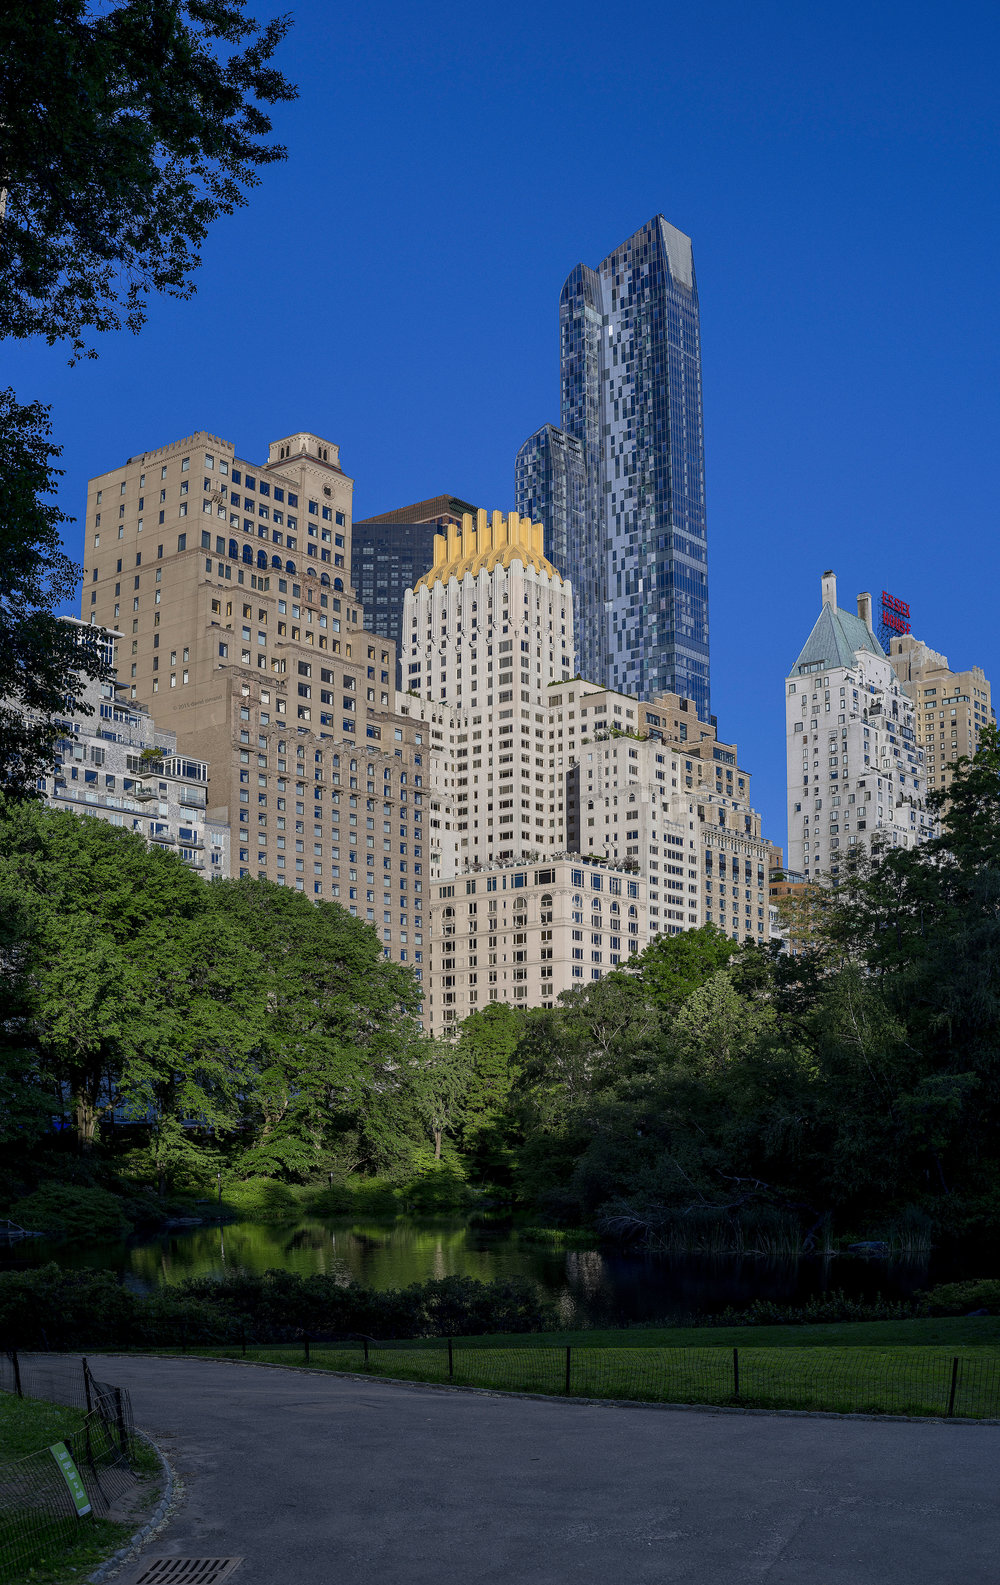 NYC Skyline from Central Park and incredible details